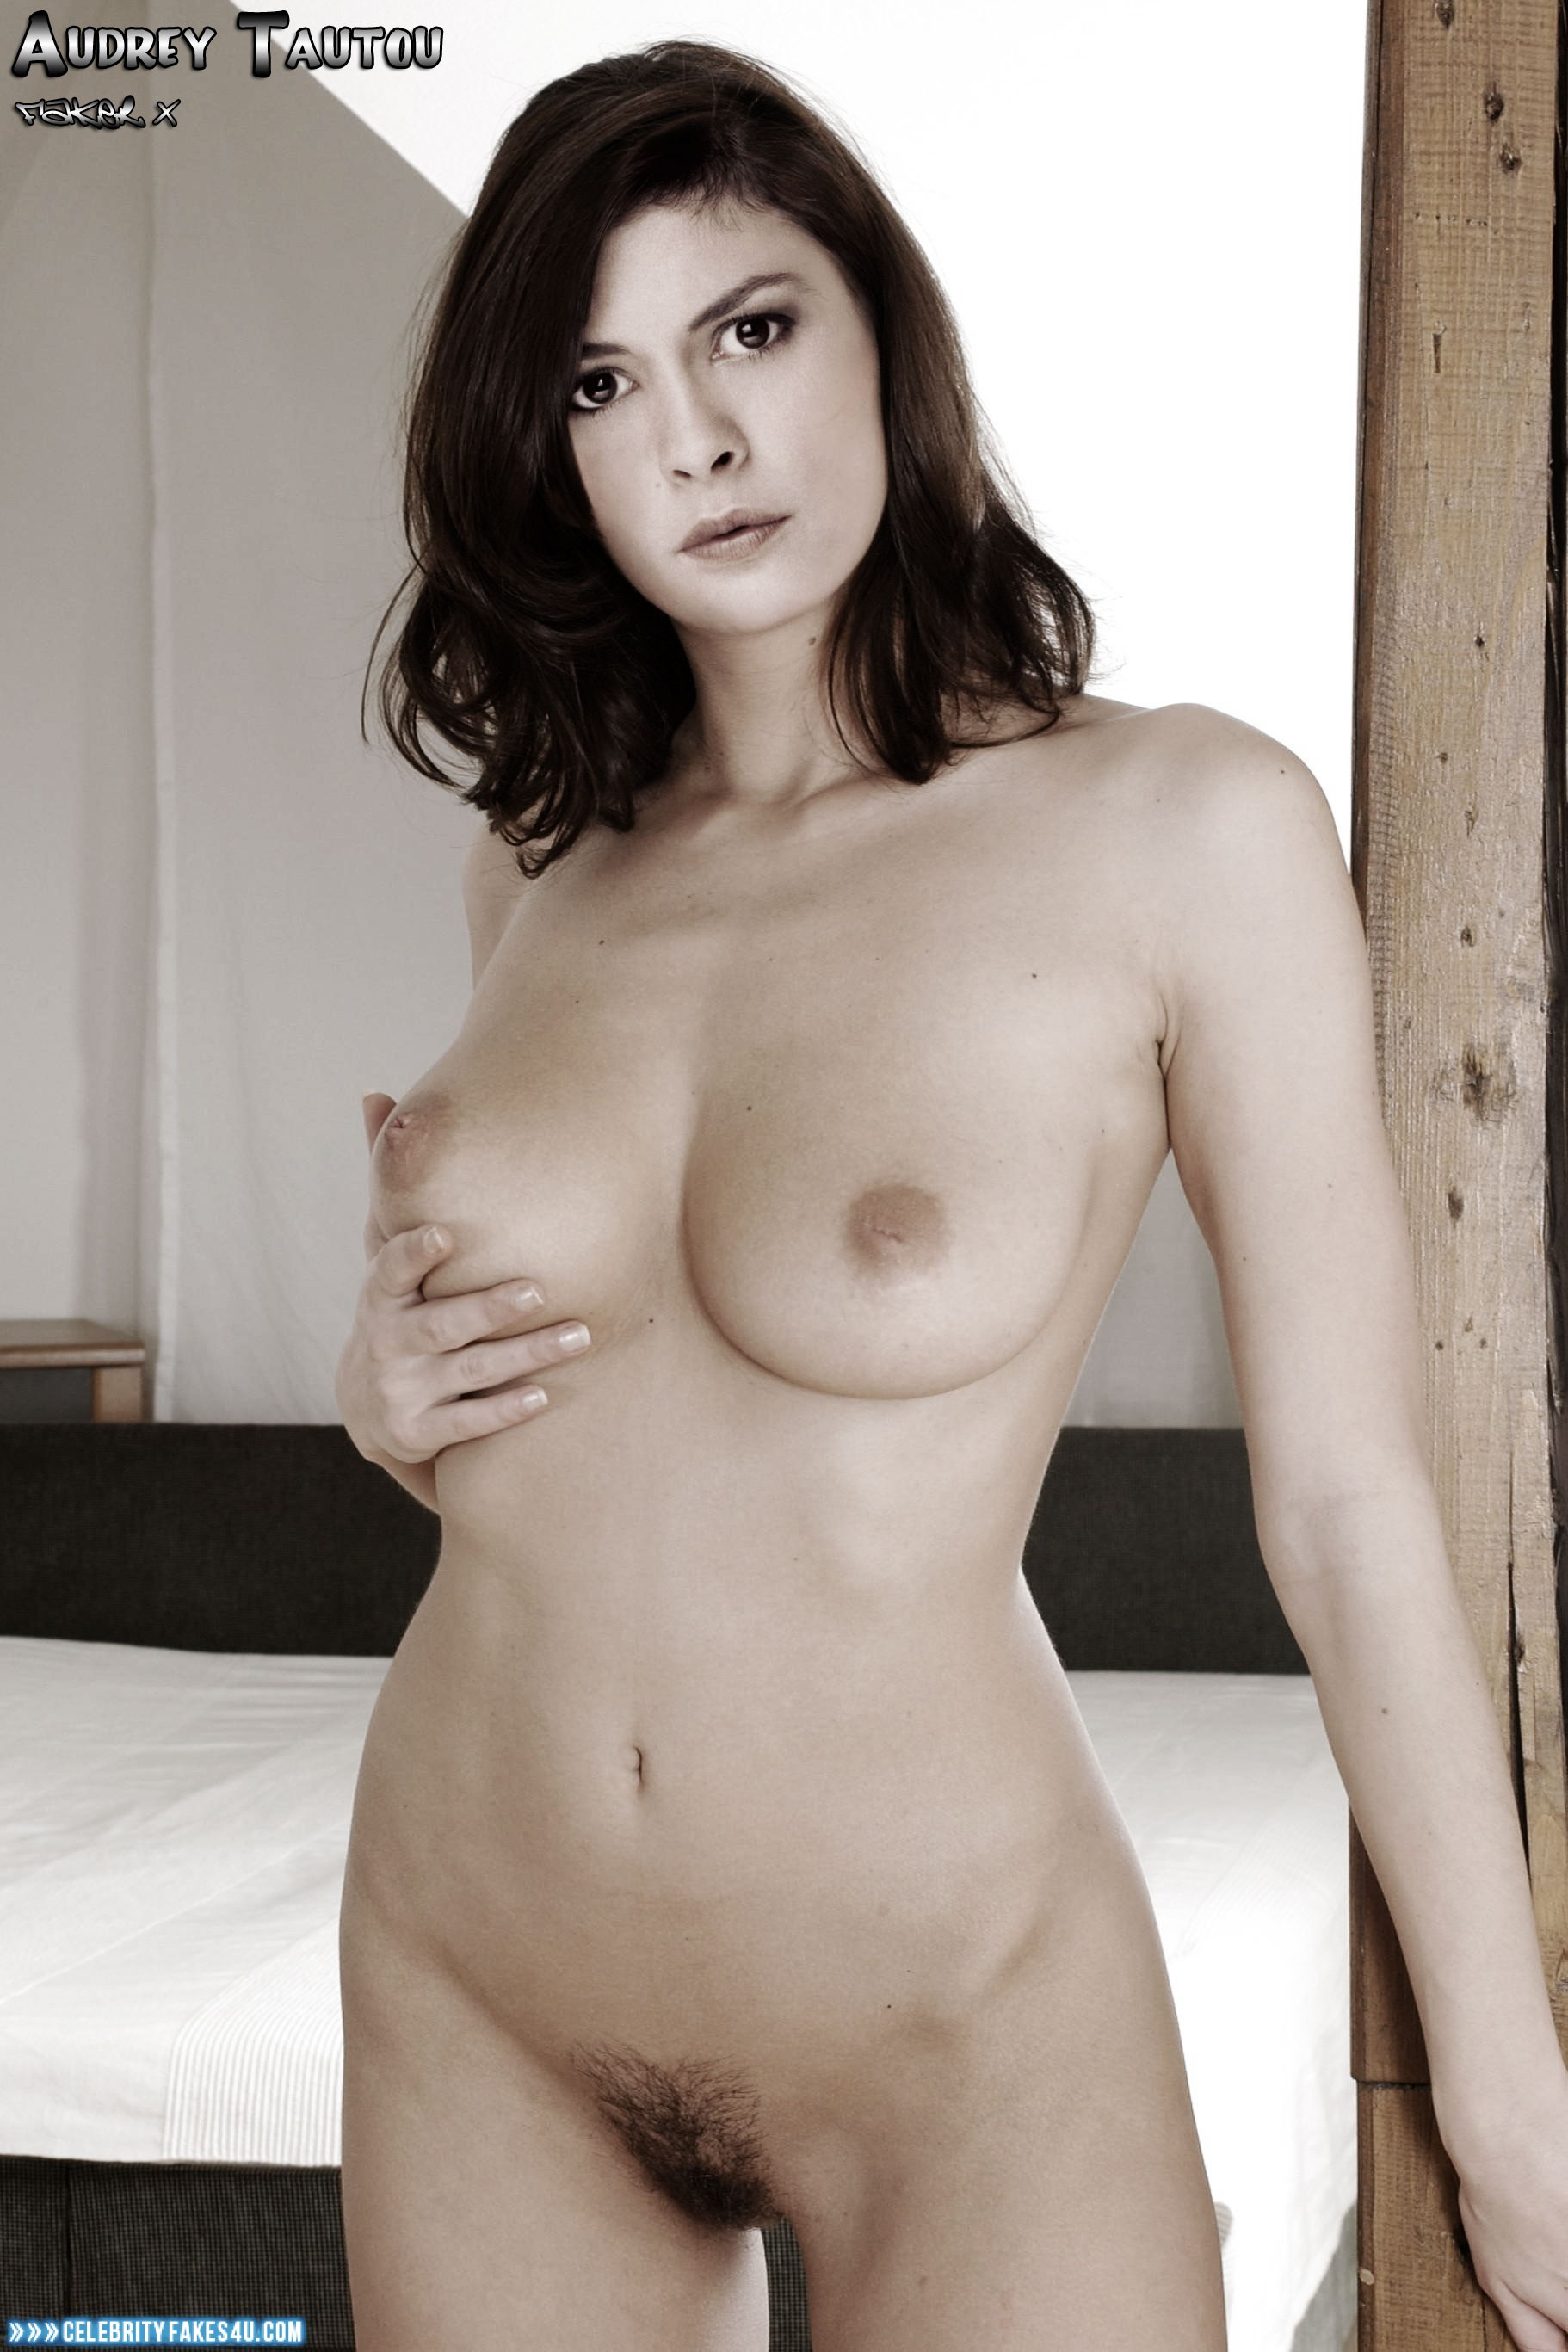 Sorry, that audrey tautou fake nude what